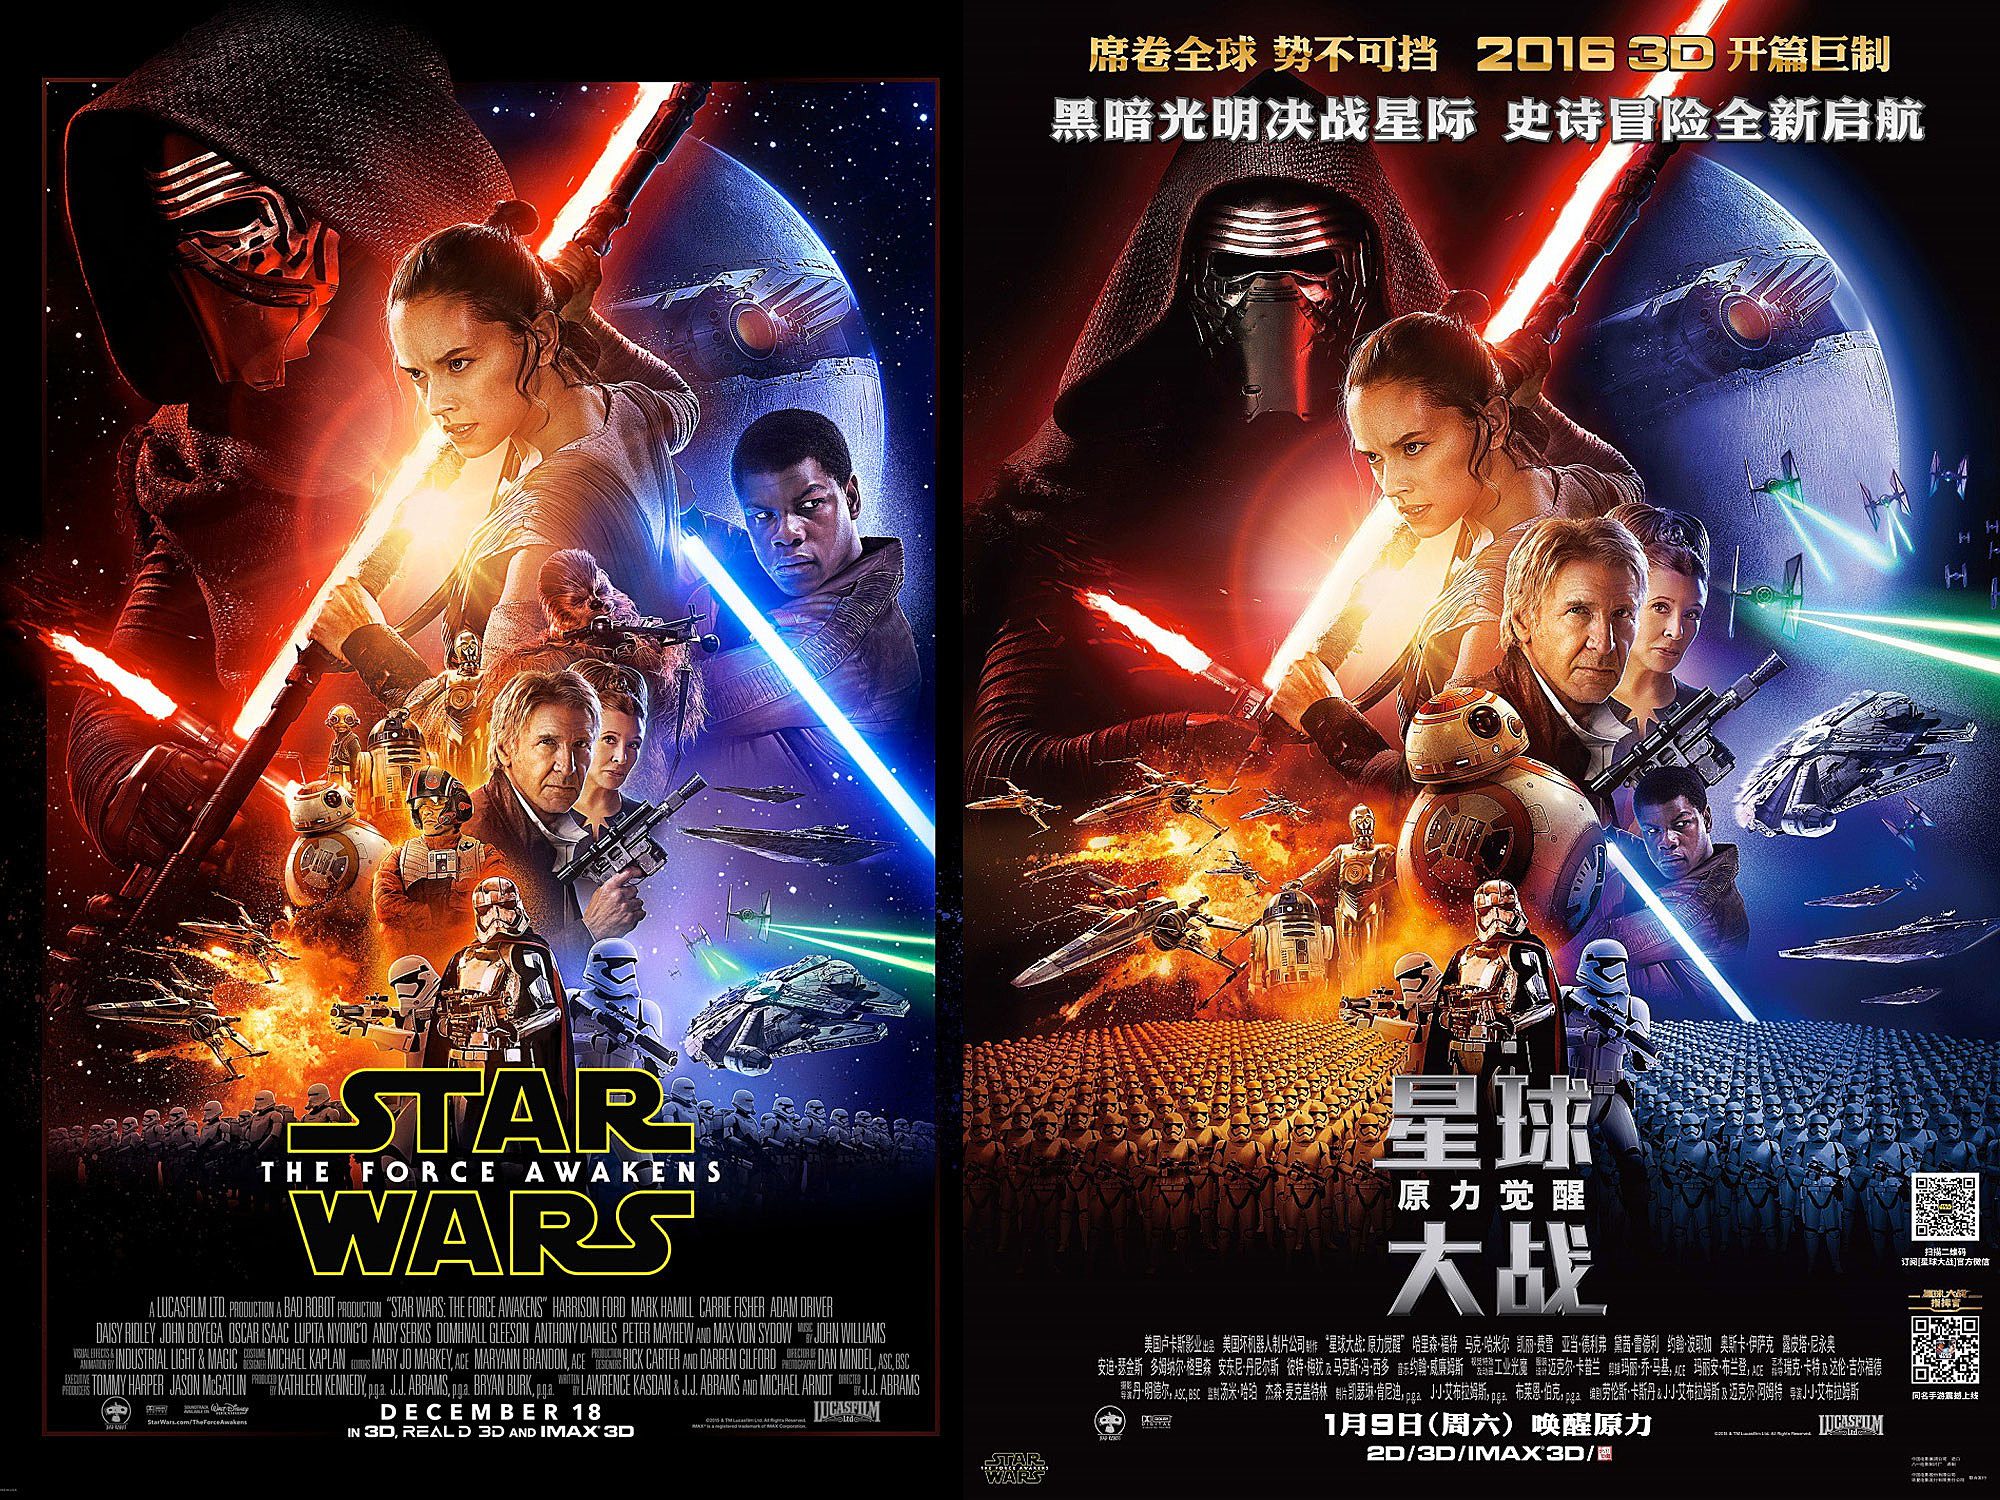 Star Wars Chinese Poster Comparison